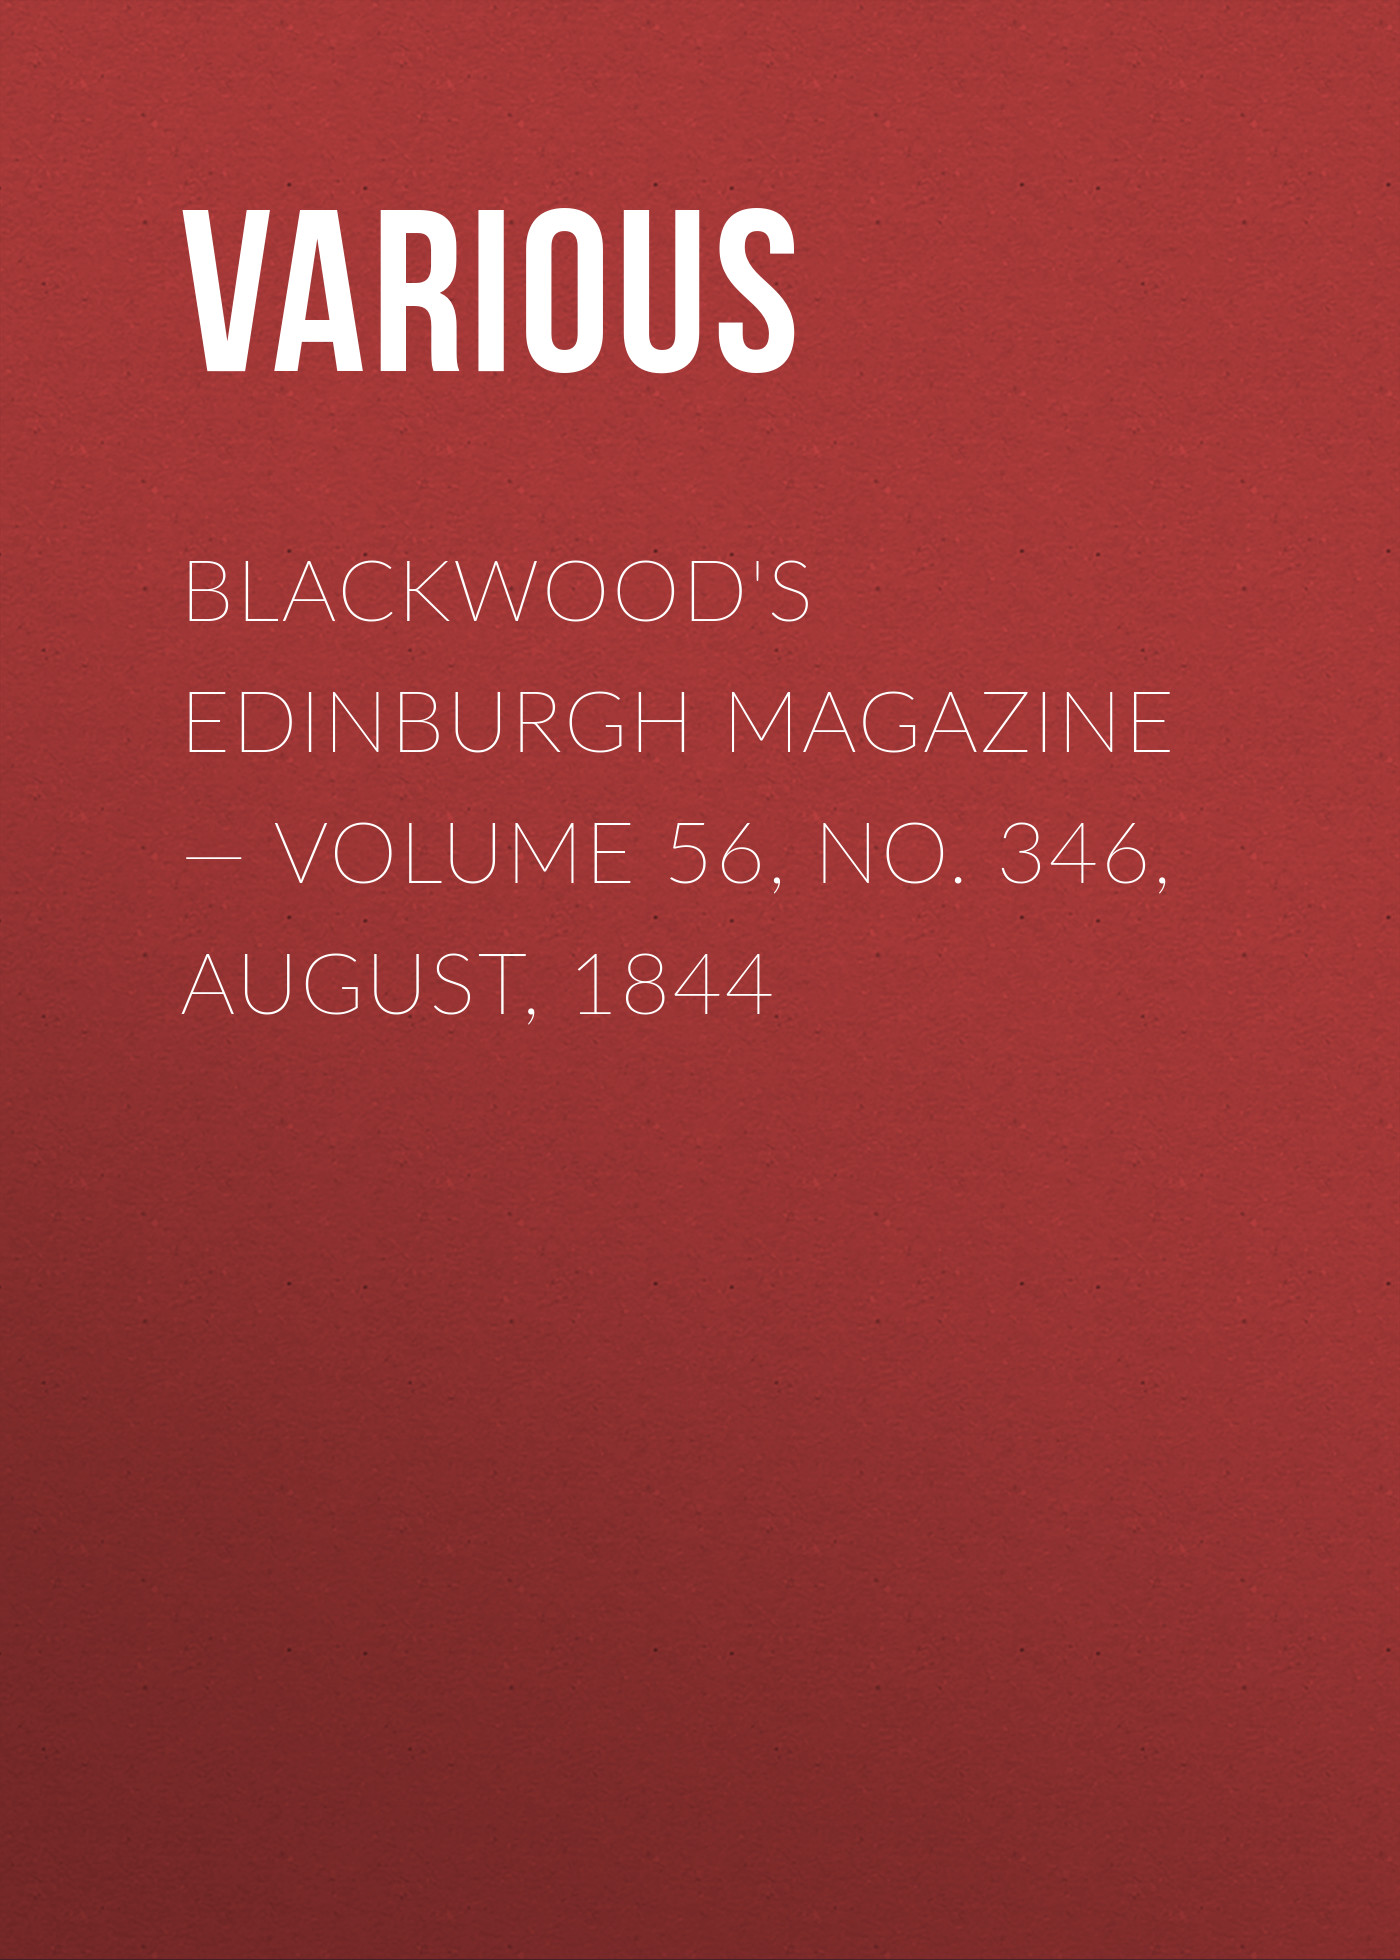 лучшая цена Various Blackwood's Edinburgh Magazine — Volume 56, No. 346, August, 1844